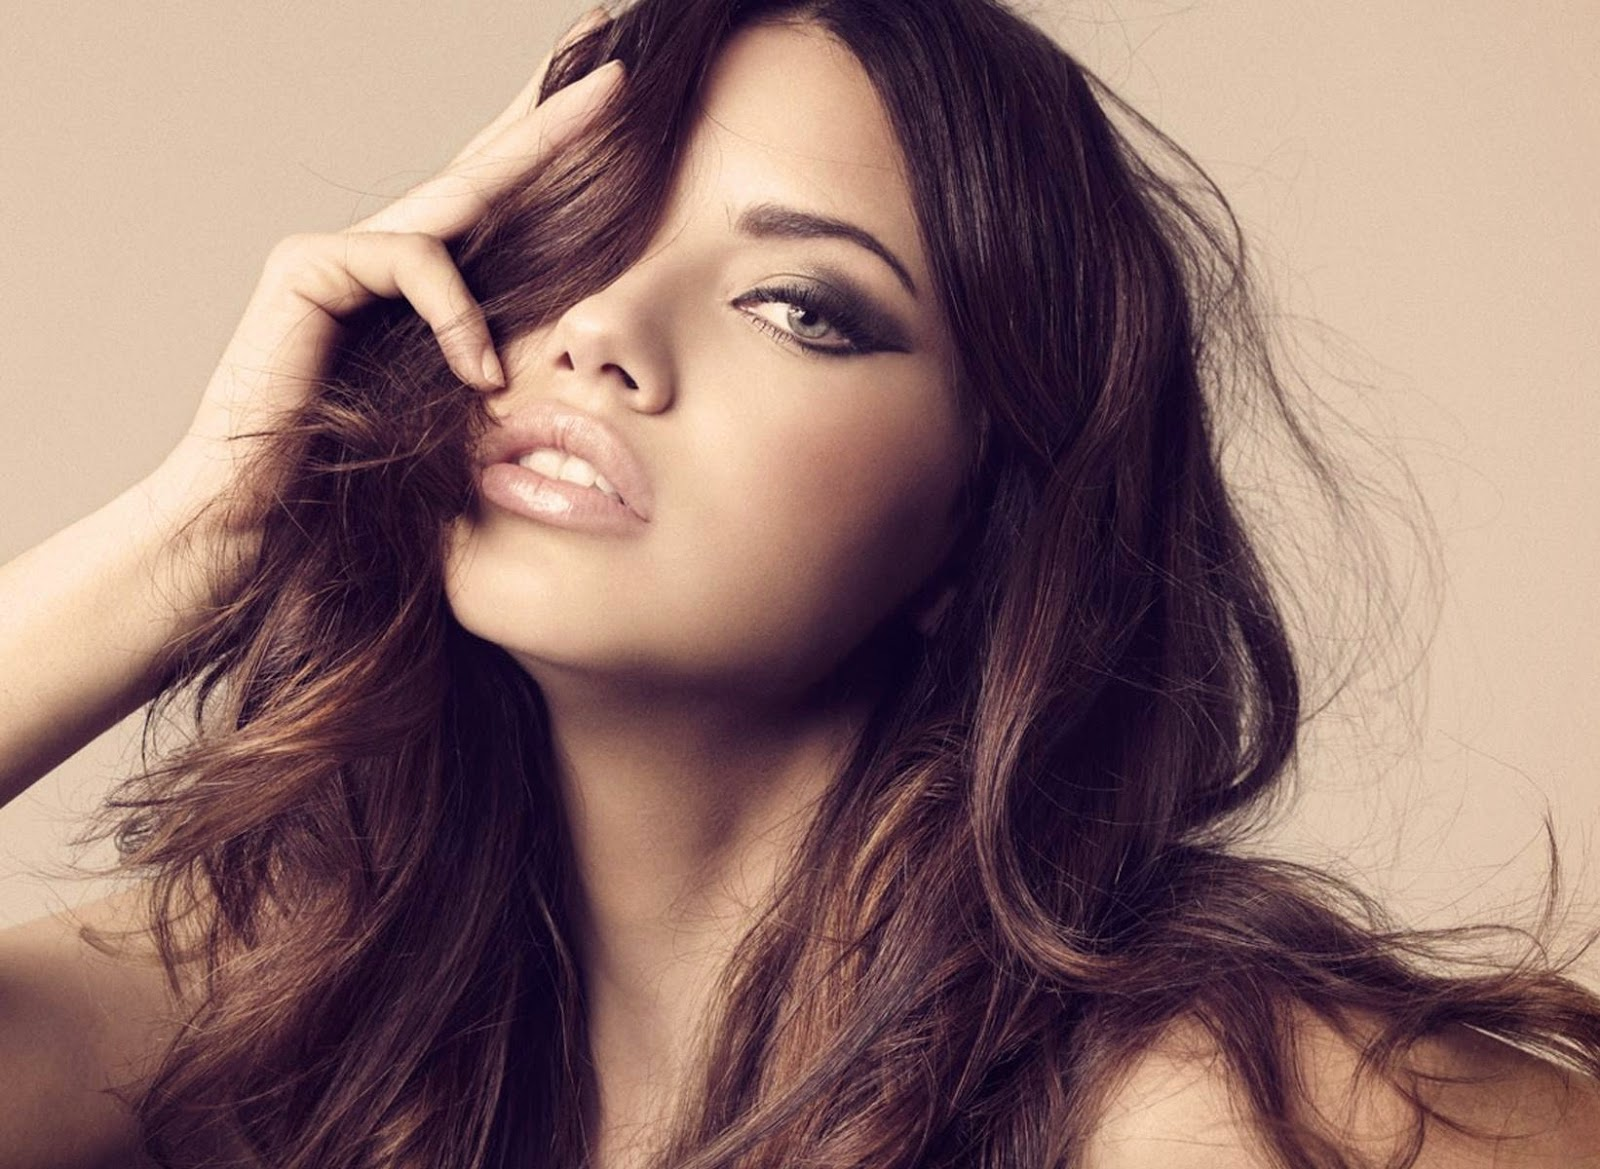 Adriana Lima Wallpapers Free Download